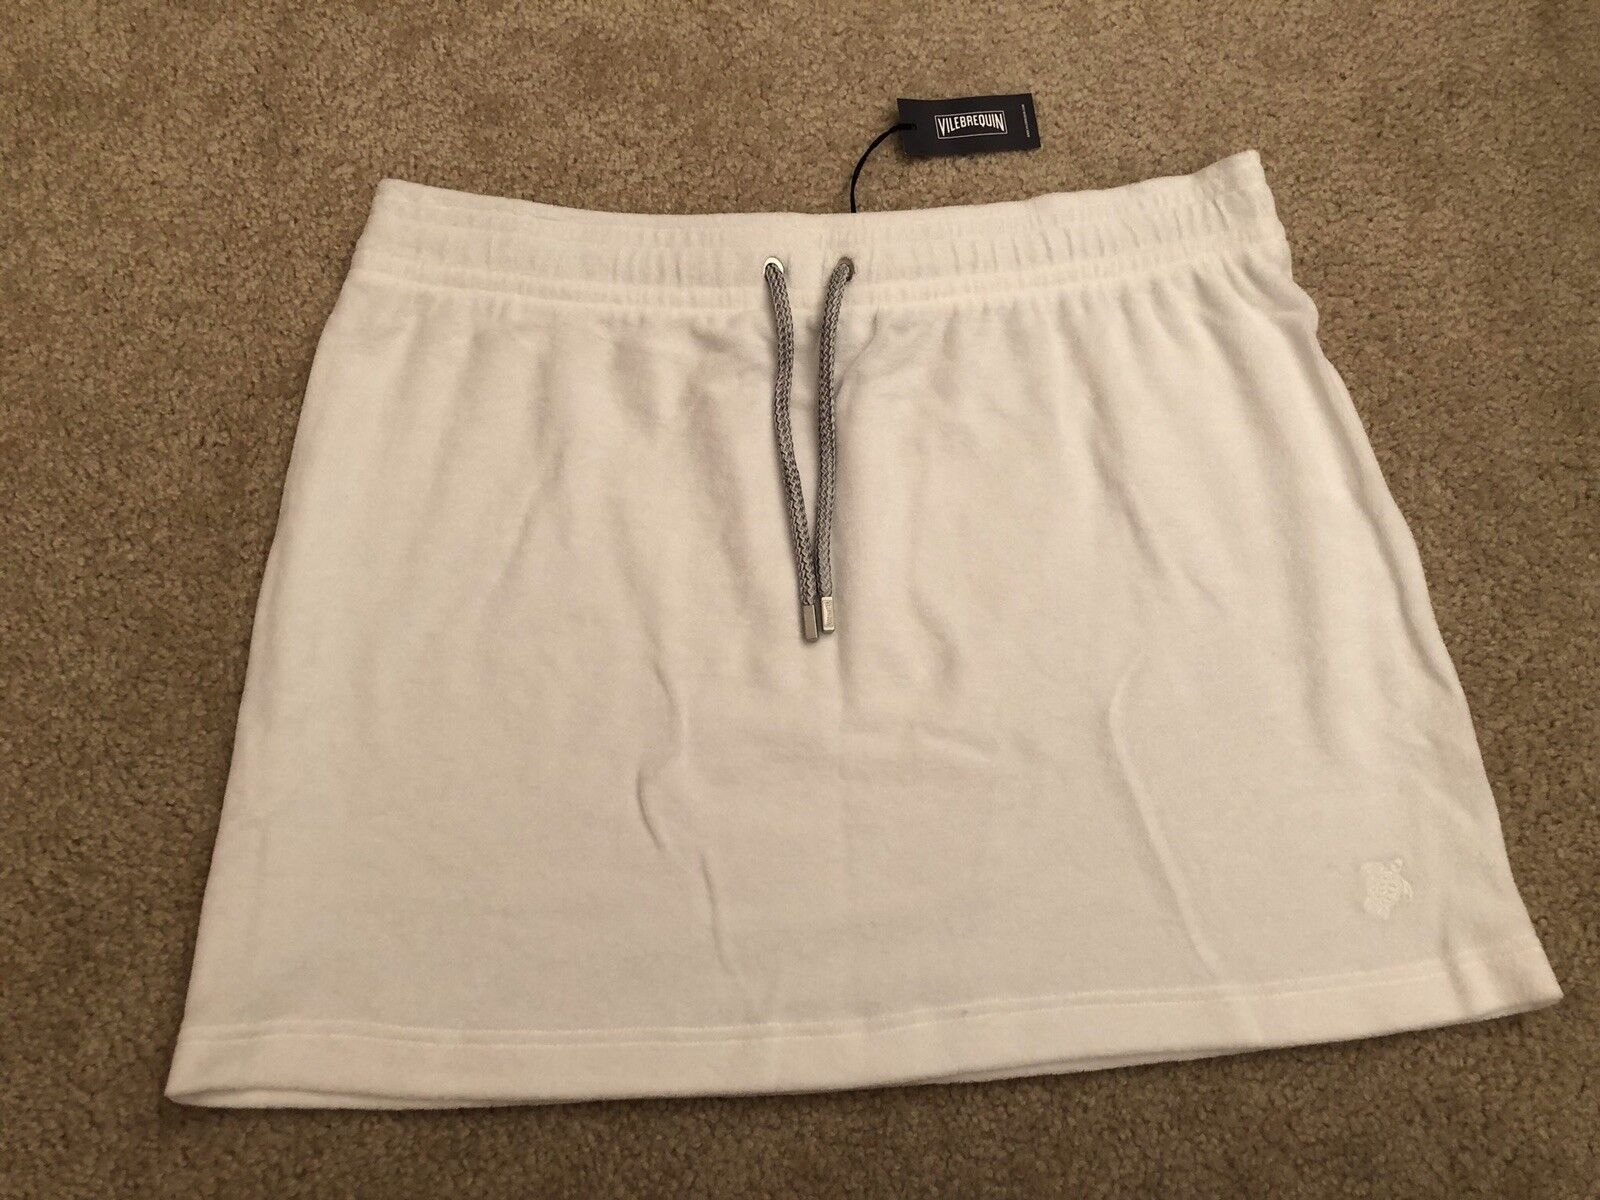 New w Tags Authentic VILEBREQUIN Terry Cloth Skirt - Women - White - Size S